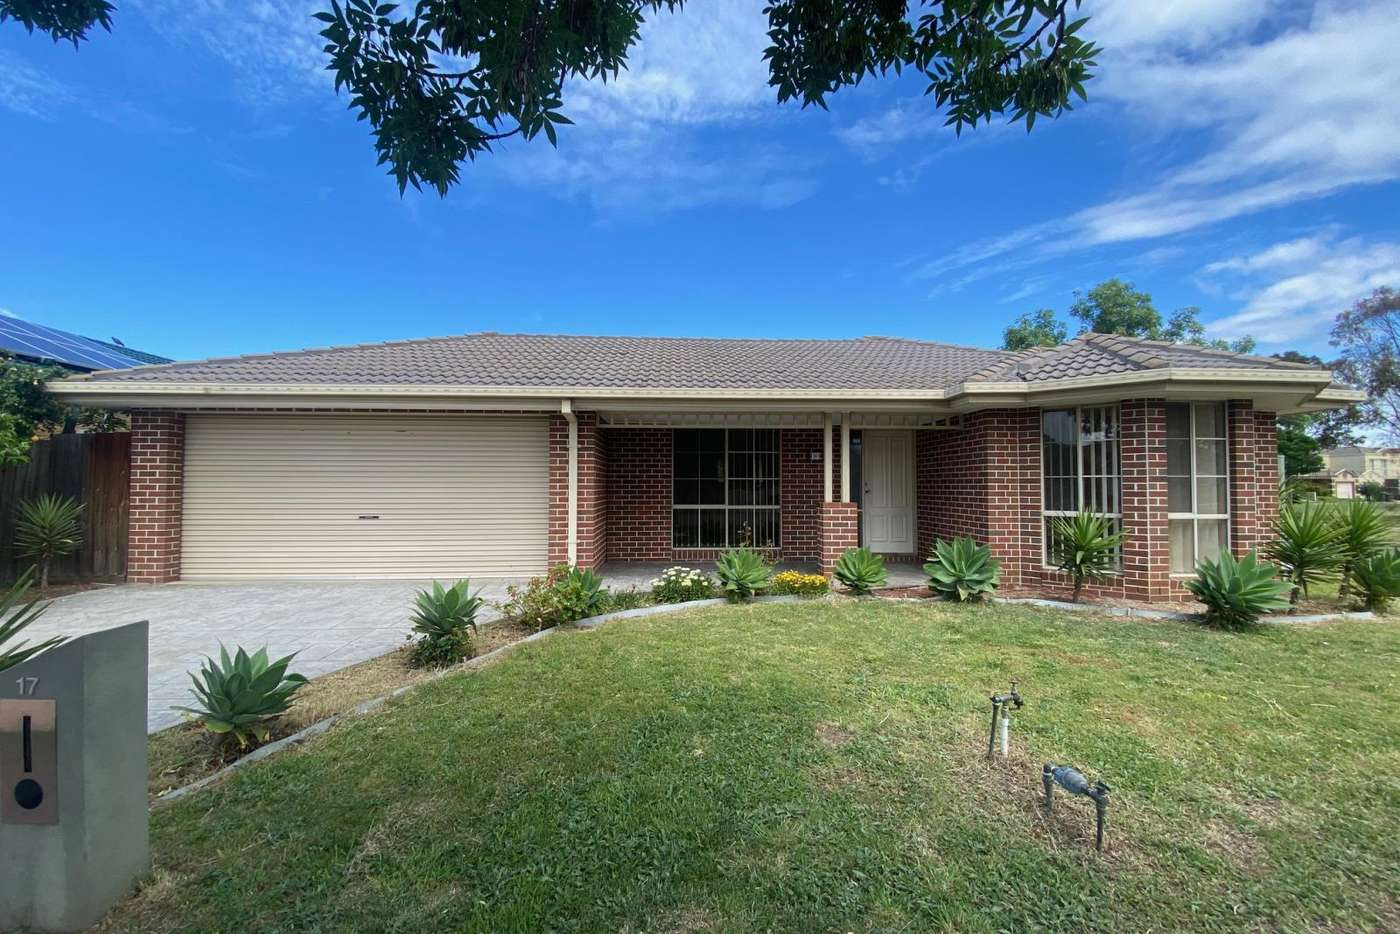 Main view of Homely house listing, 17 Newminster Way, Point Cook VIC 3030